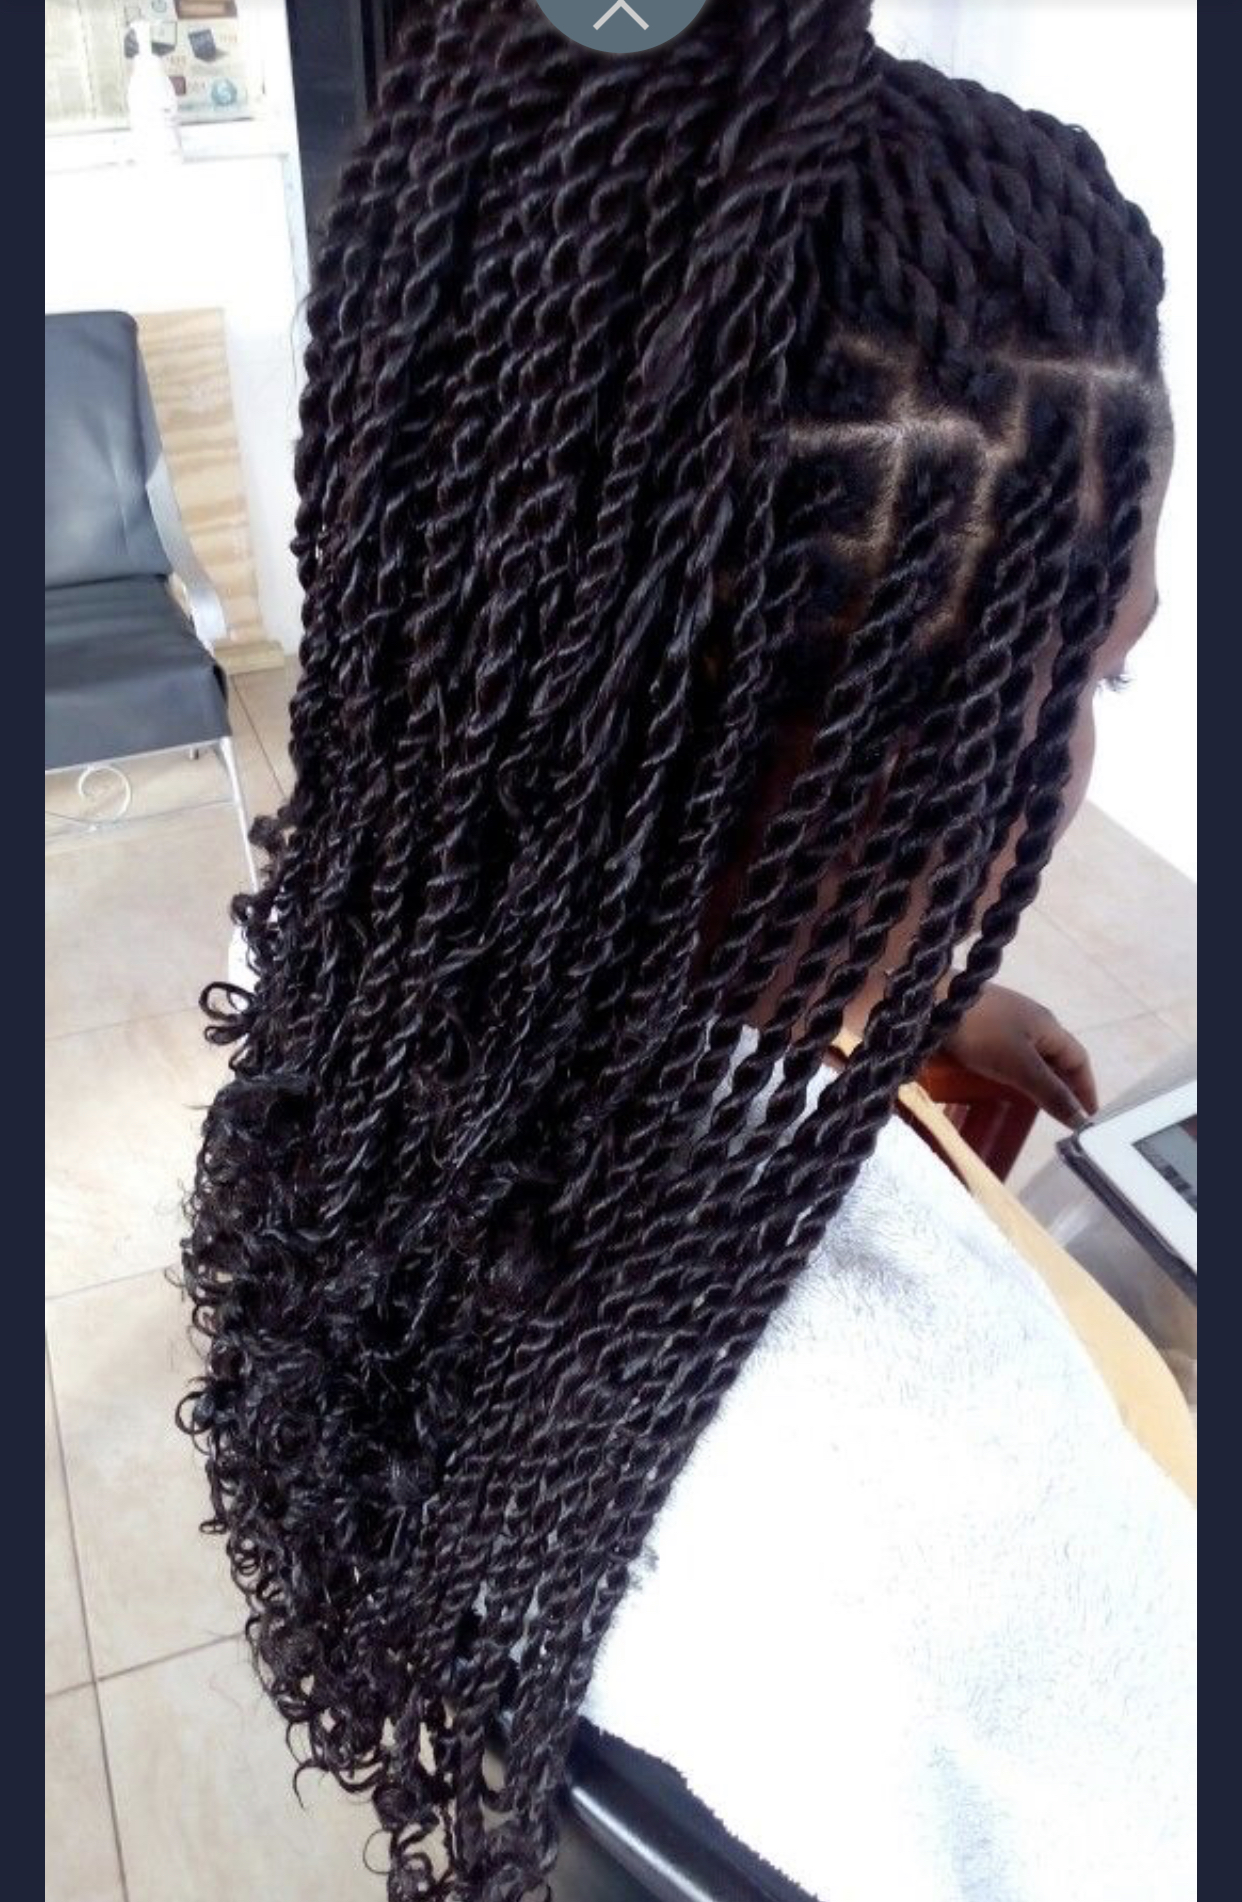 salon de coiffure afro tresse tresses box braids crochet braids vanilles tissages paris 75 77 78 91 92 93 94 95 VEJVXHFR